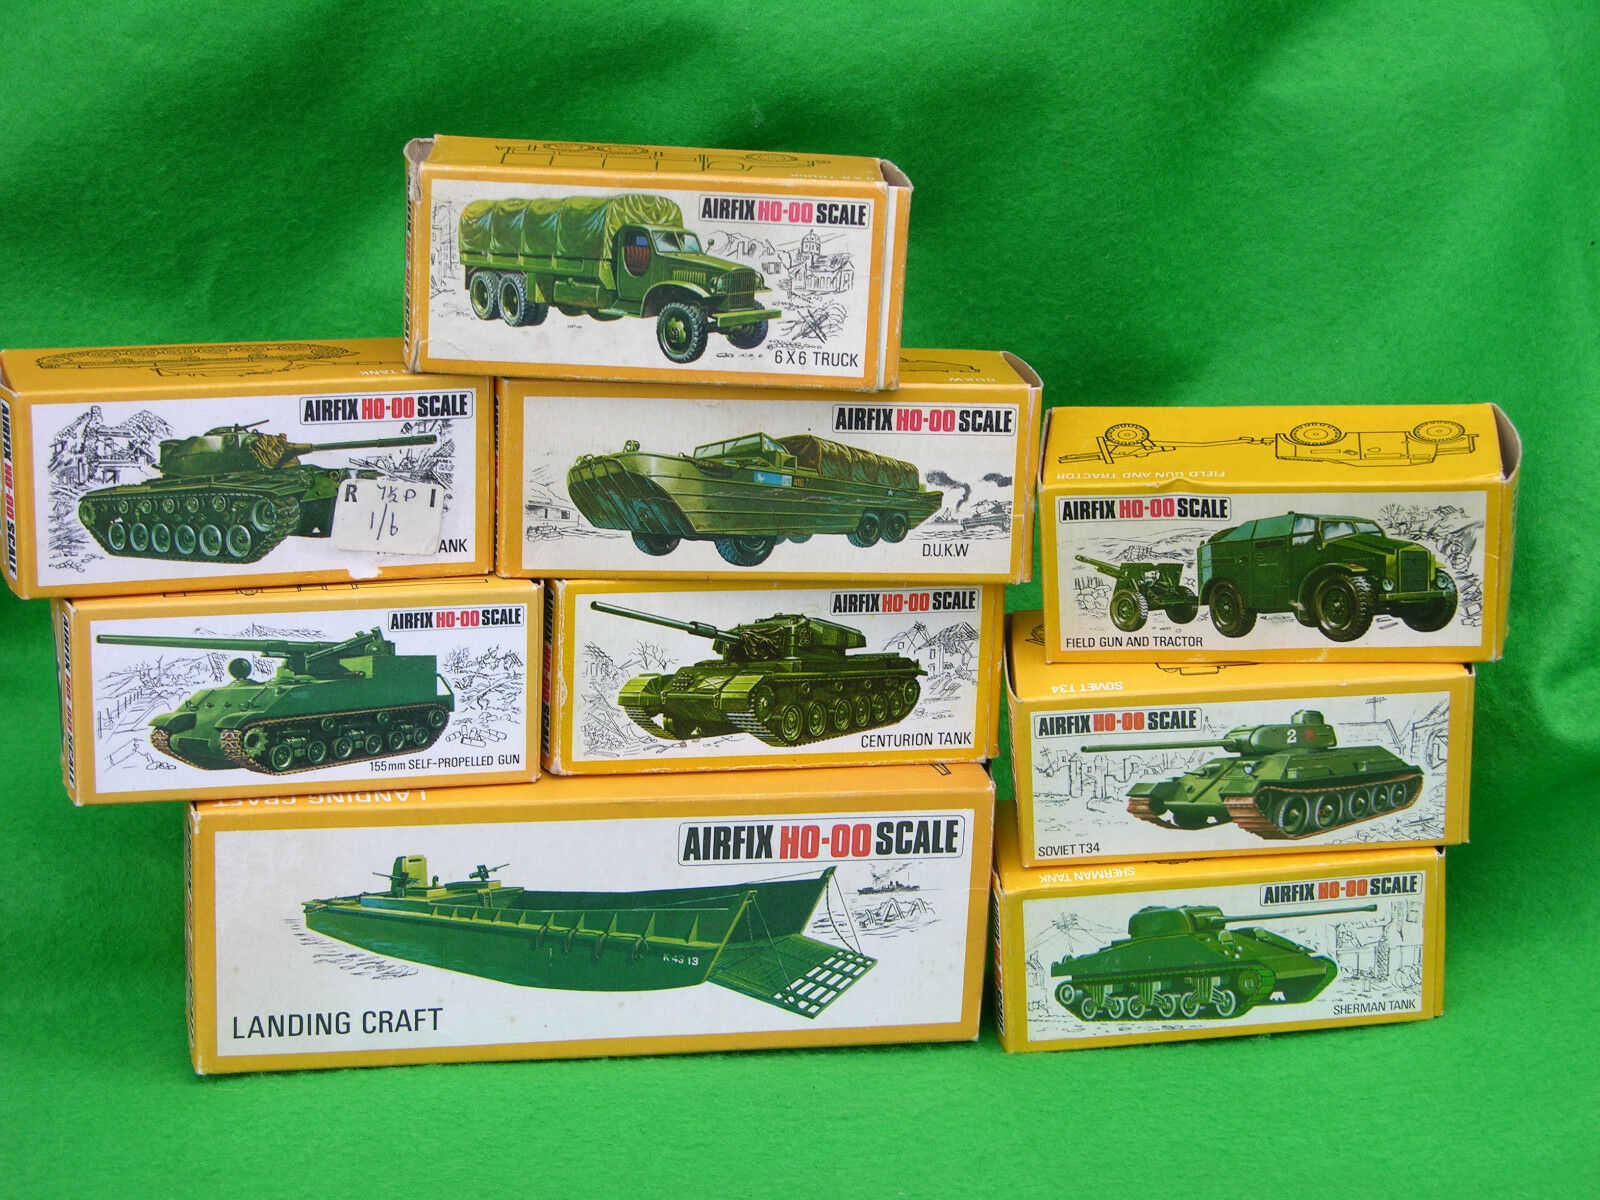 .AIRFIX 1 72 HO-OO SCALE MILITARY VEHICLE, BOXED MULTI-LISTING